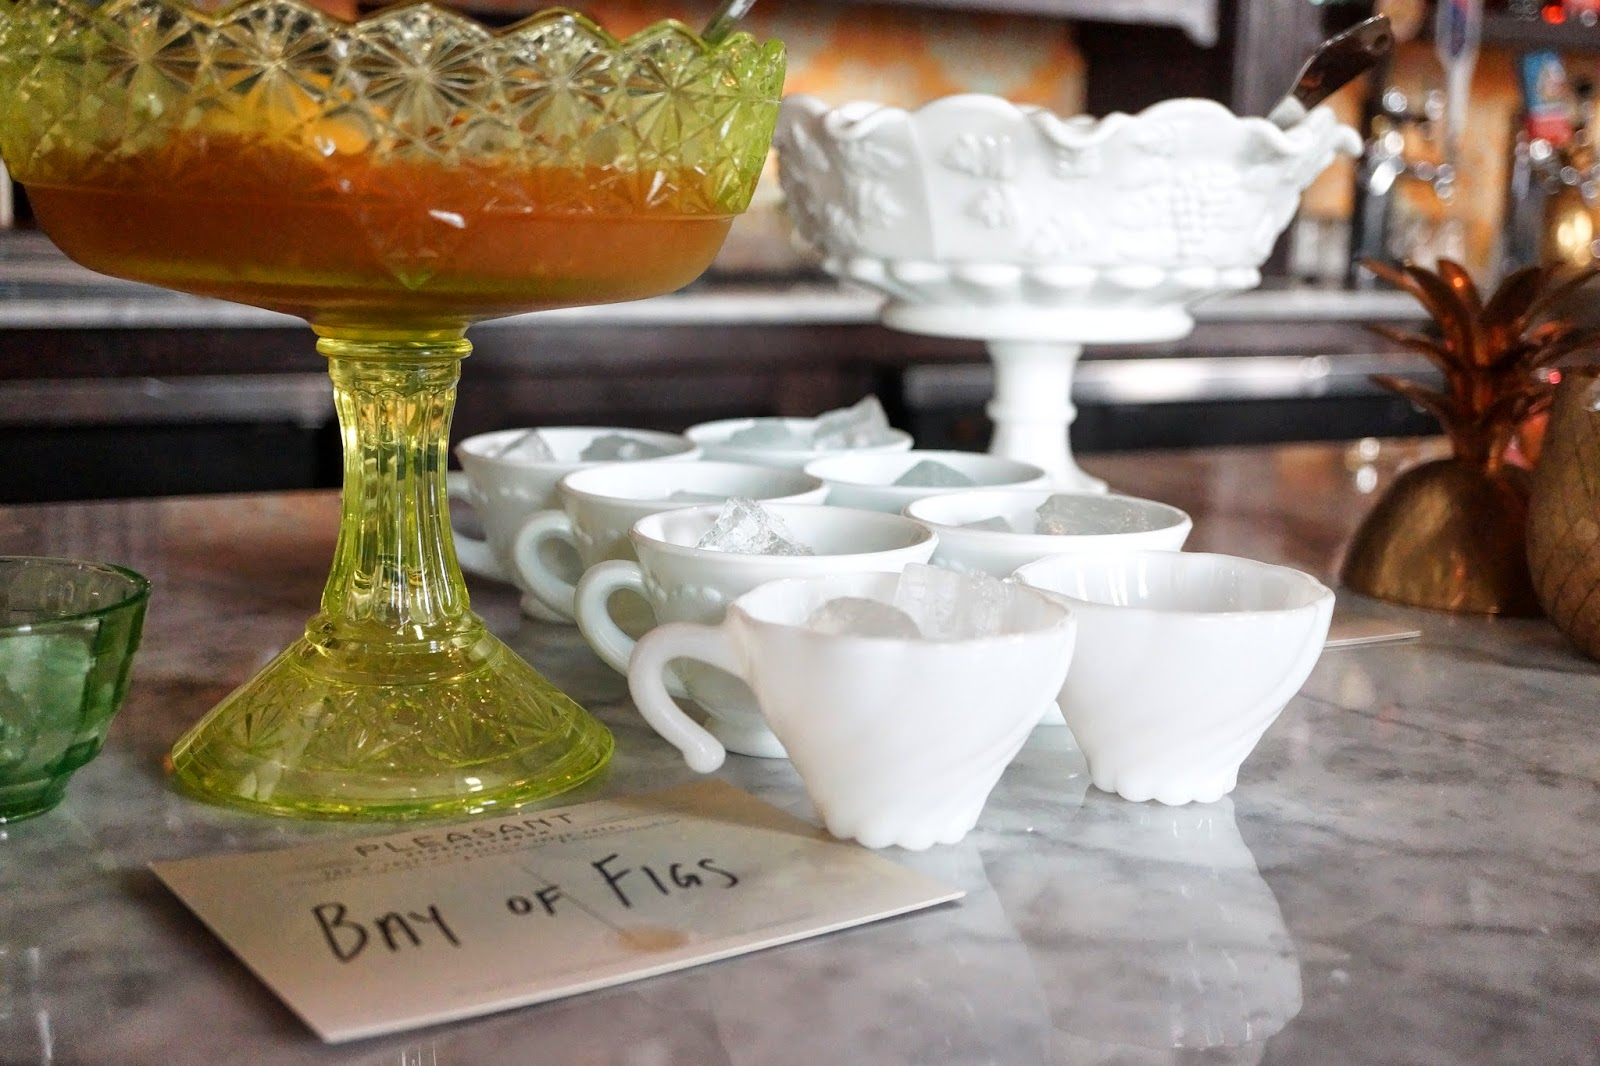 Bay of Figs punch service & Pleasant Storage Room Bringing Cuban Flair to Austin   Sushi in the ATX